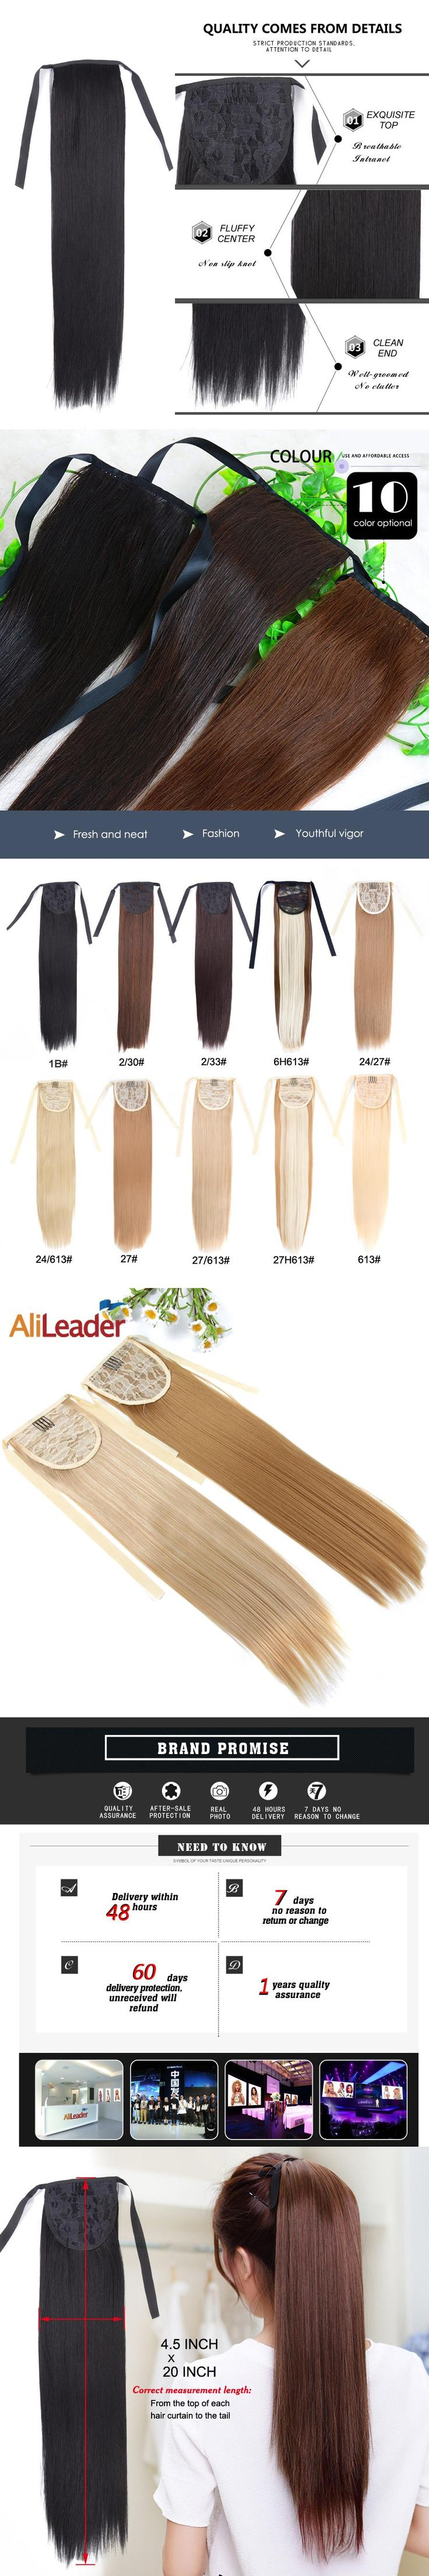 AliLeader Product False Hair Ponytails Hair Pieces 20 Inch 80G 10Colors Synthetic Straight Long Hair Ponytail Clip In Extensions